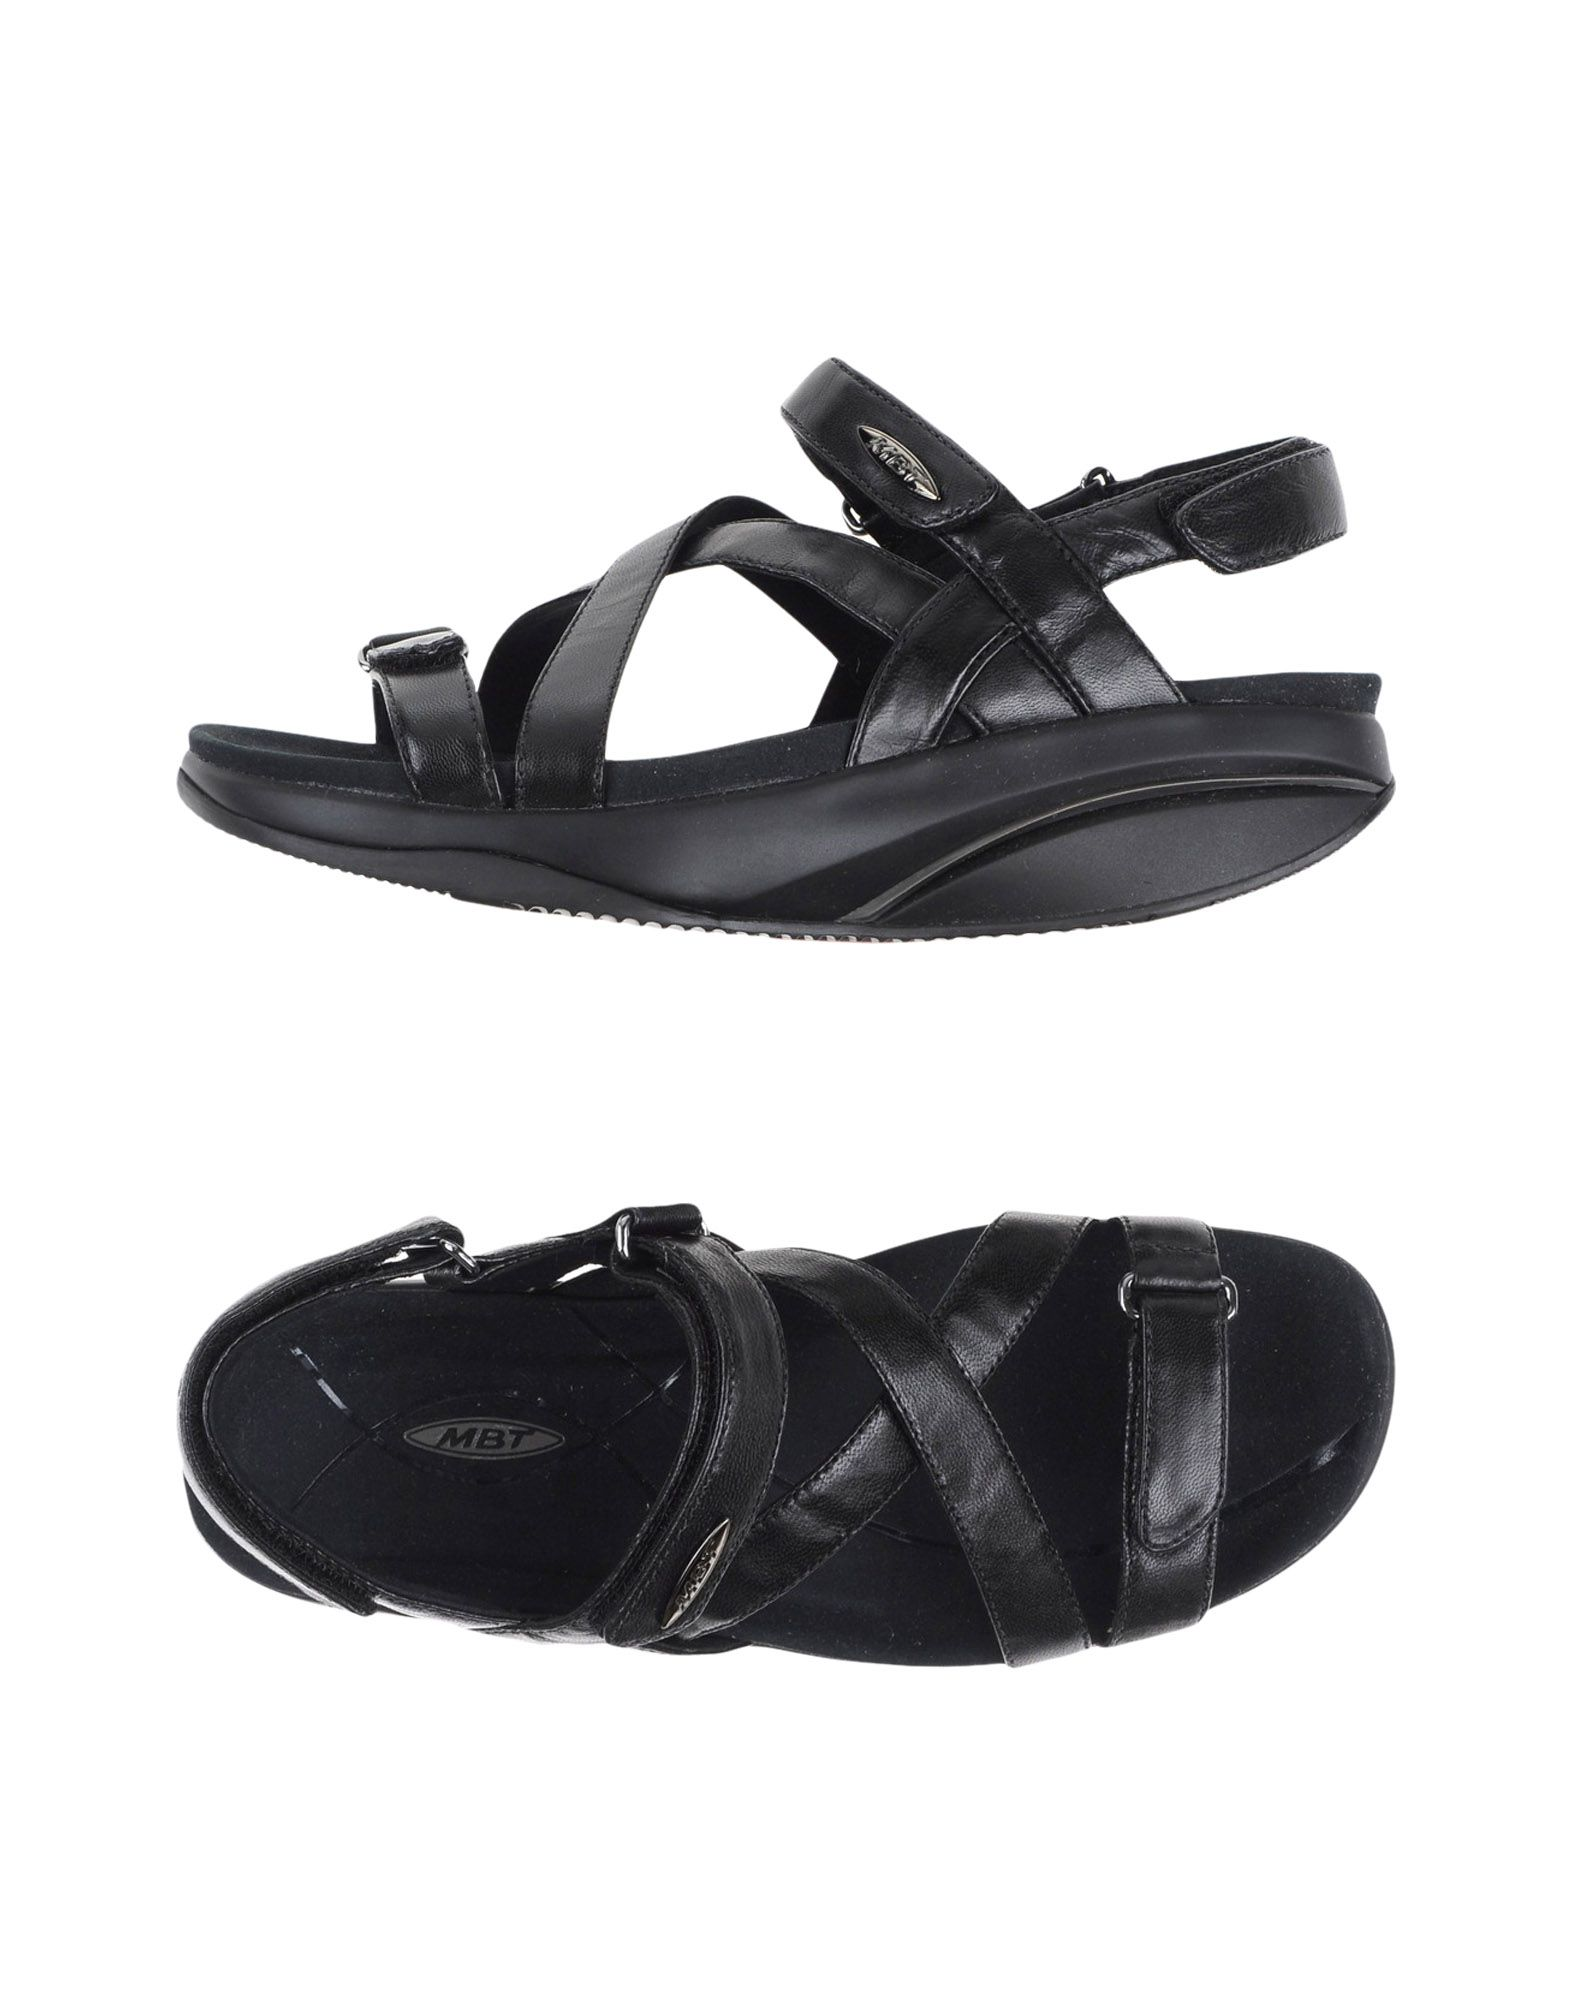 Stilvolle billige Schuhe Mbt Sandalen Damen  44959689TM